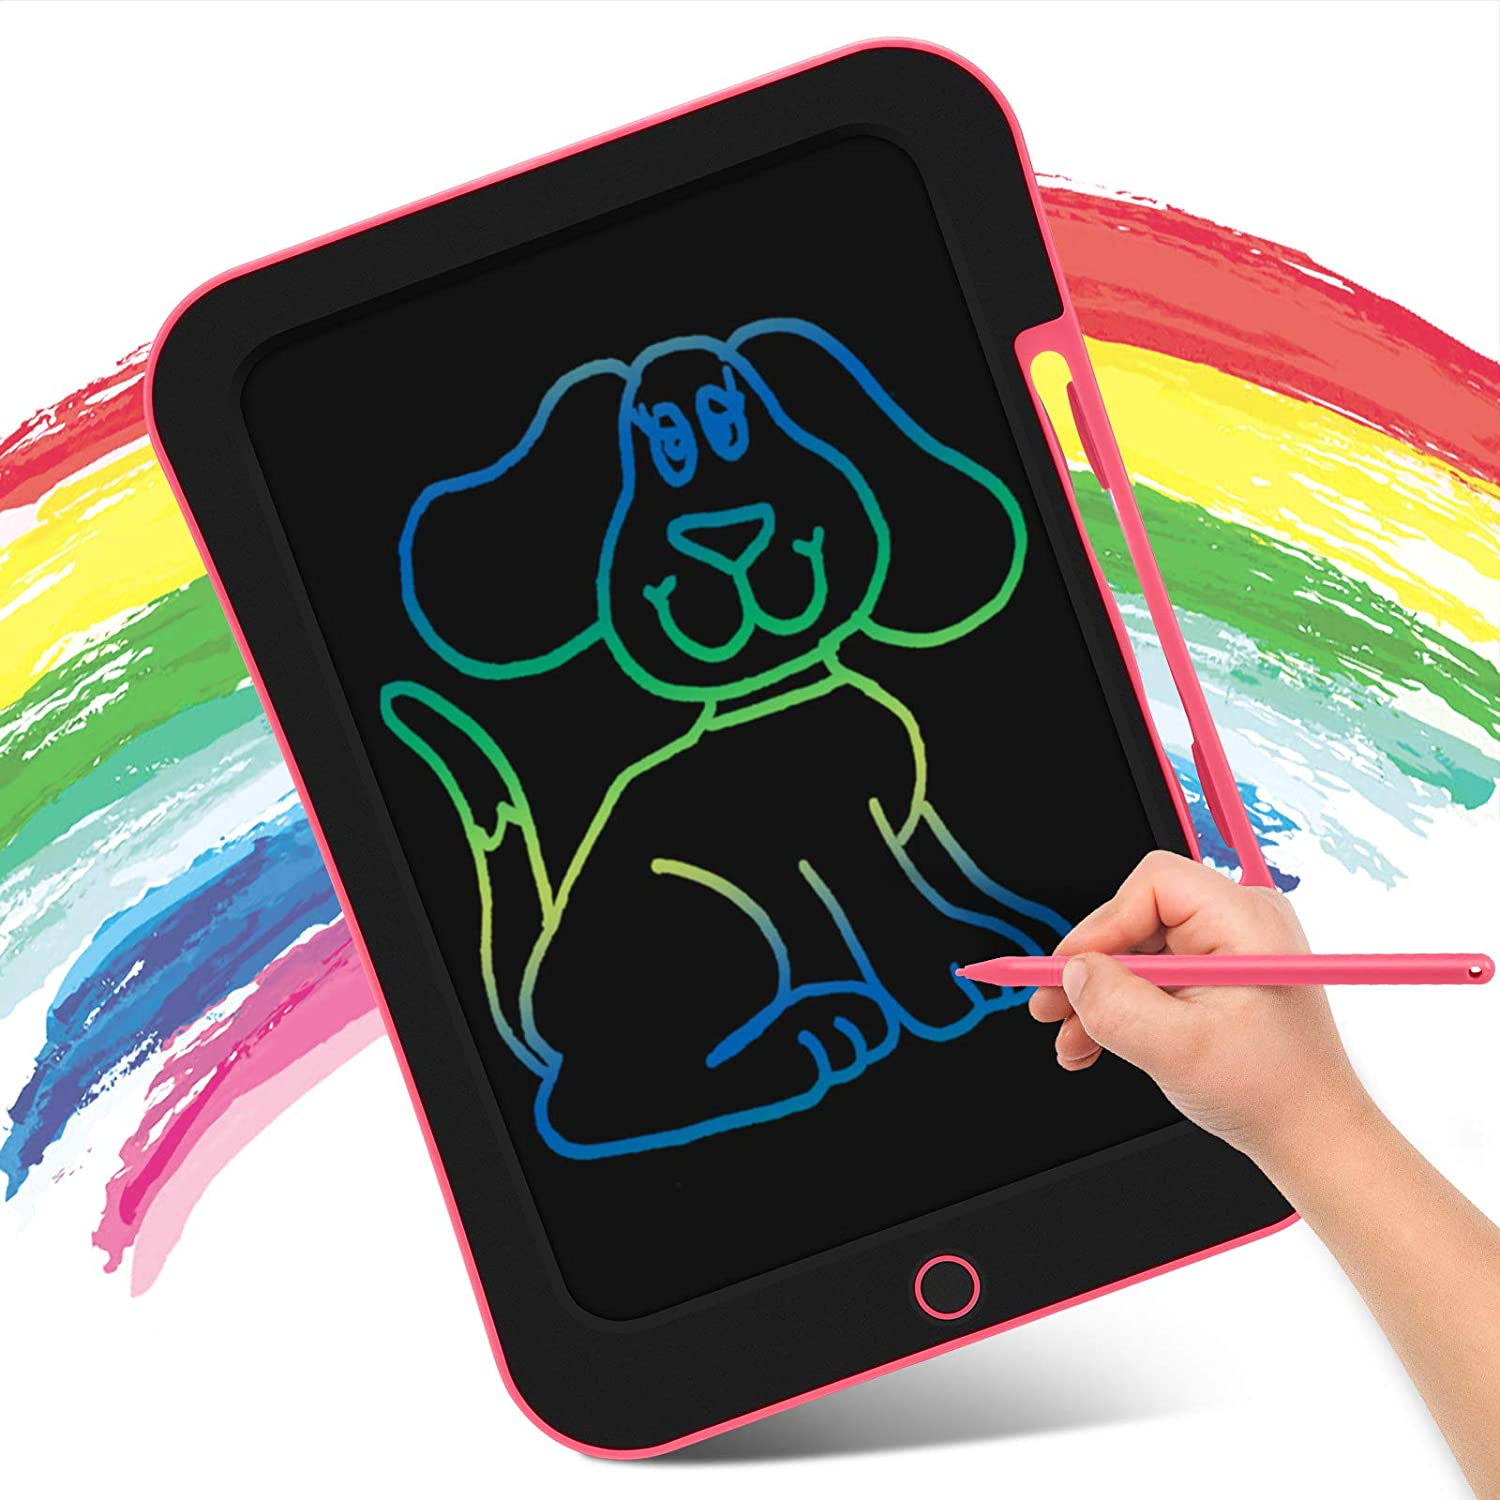 INKPOT LCD Drawing Tablet 10.5 Inch, Colorful Doodle Board Drawing Tablet for Kids,Erasable Reusable Writing Drawing Pad,Learning Educational Toy Gift for Children 3 4 5 6 7 8 9: Toys & Games